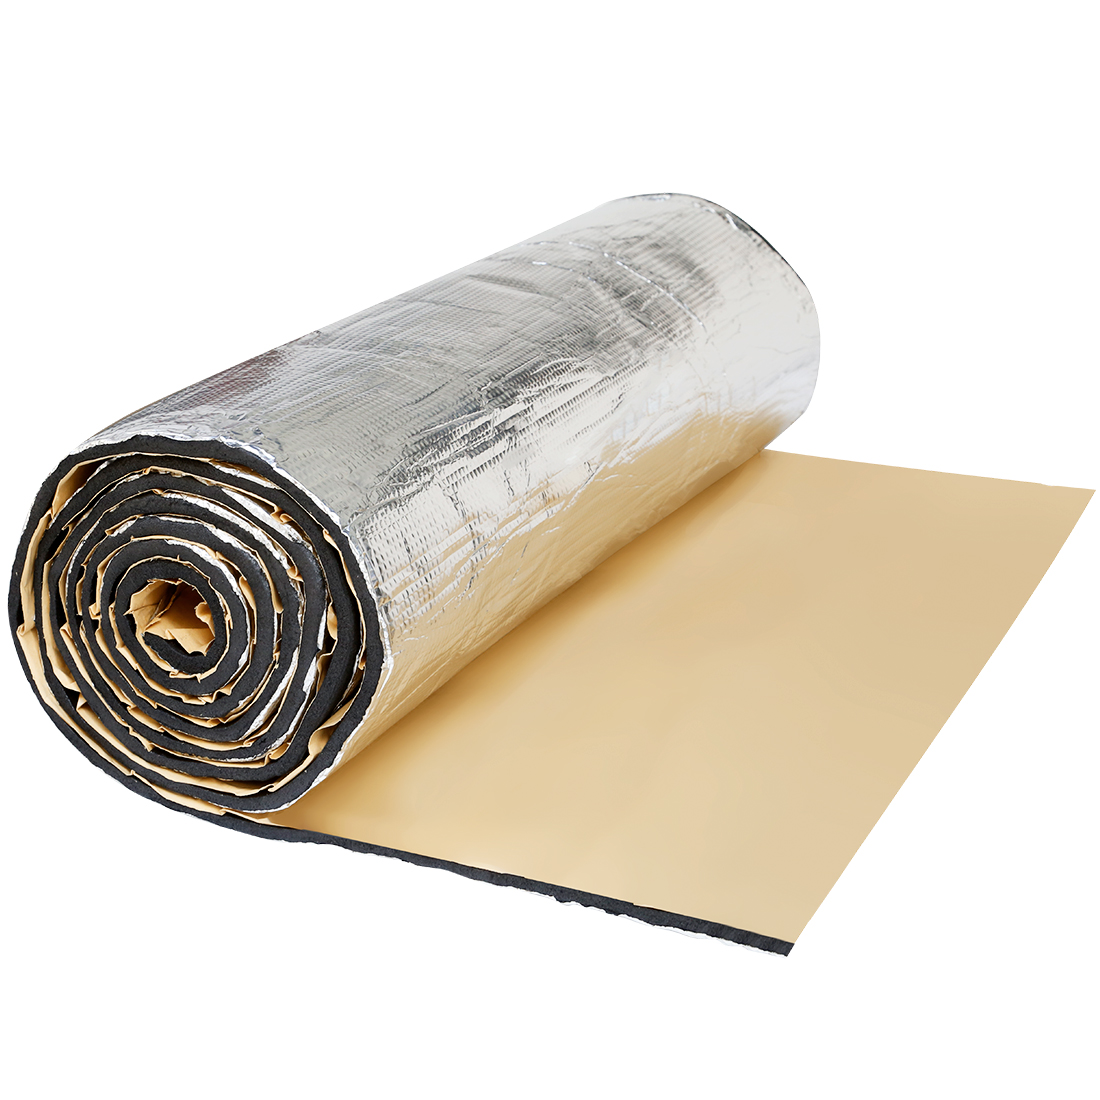 "236mil 16.36sqft Car Sound Deadener Heat Insulation Underlay Shield Mat 60""x40"""